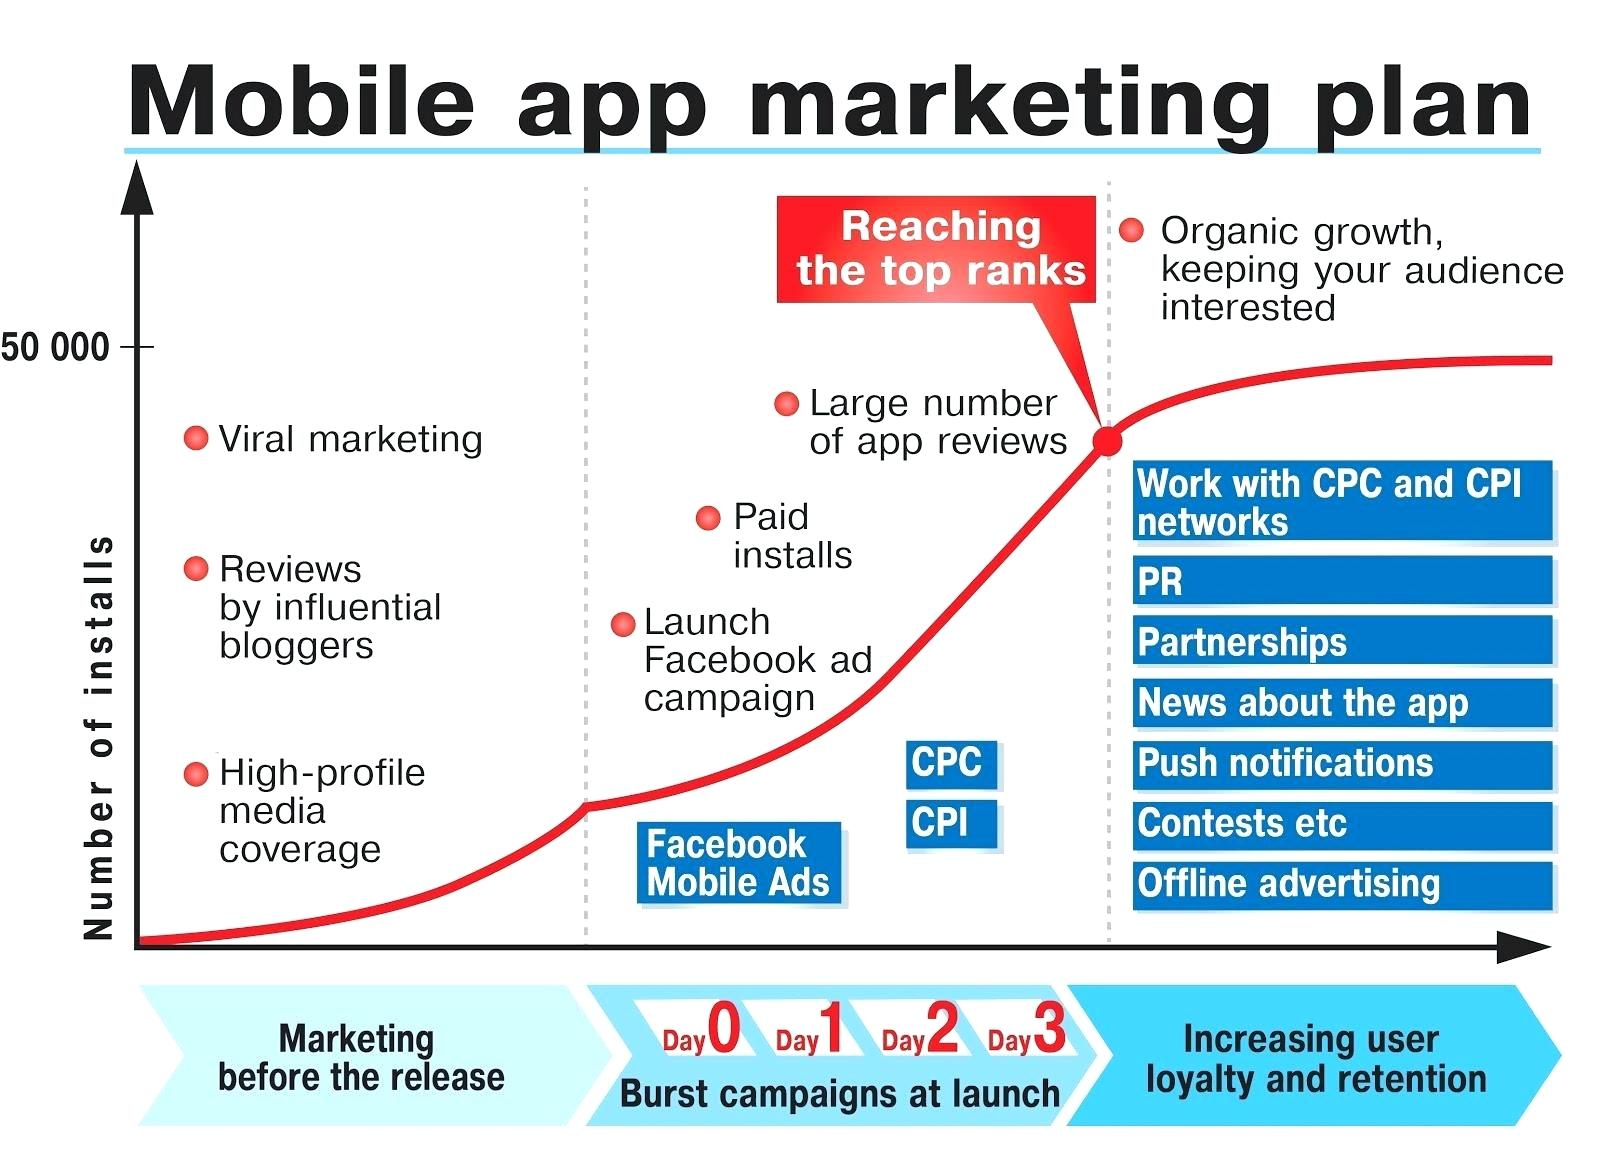 Template InterMarketing Business Plan Mobile App Startup For